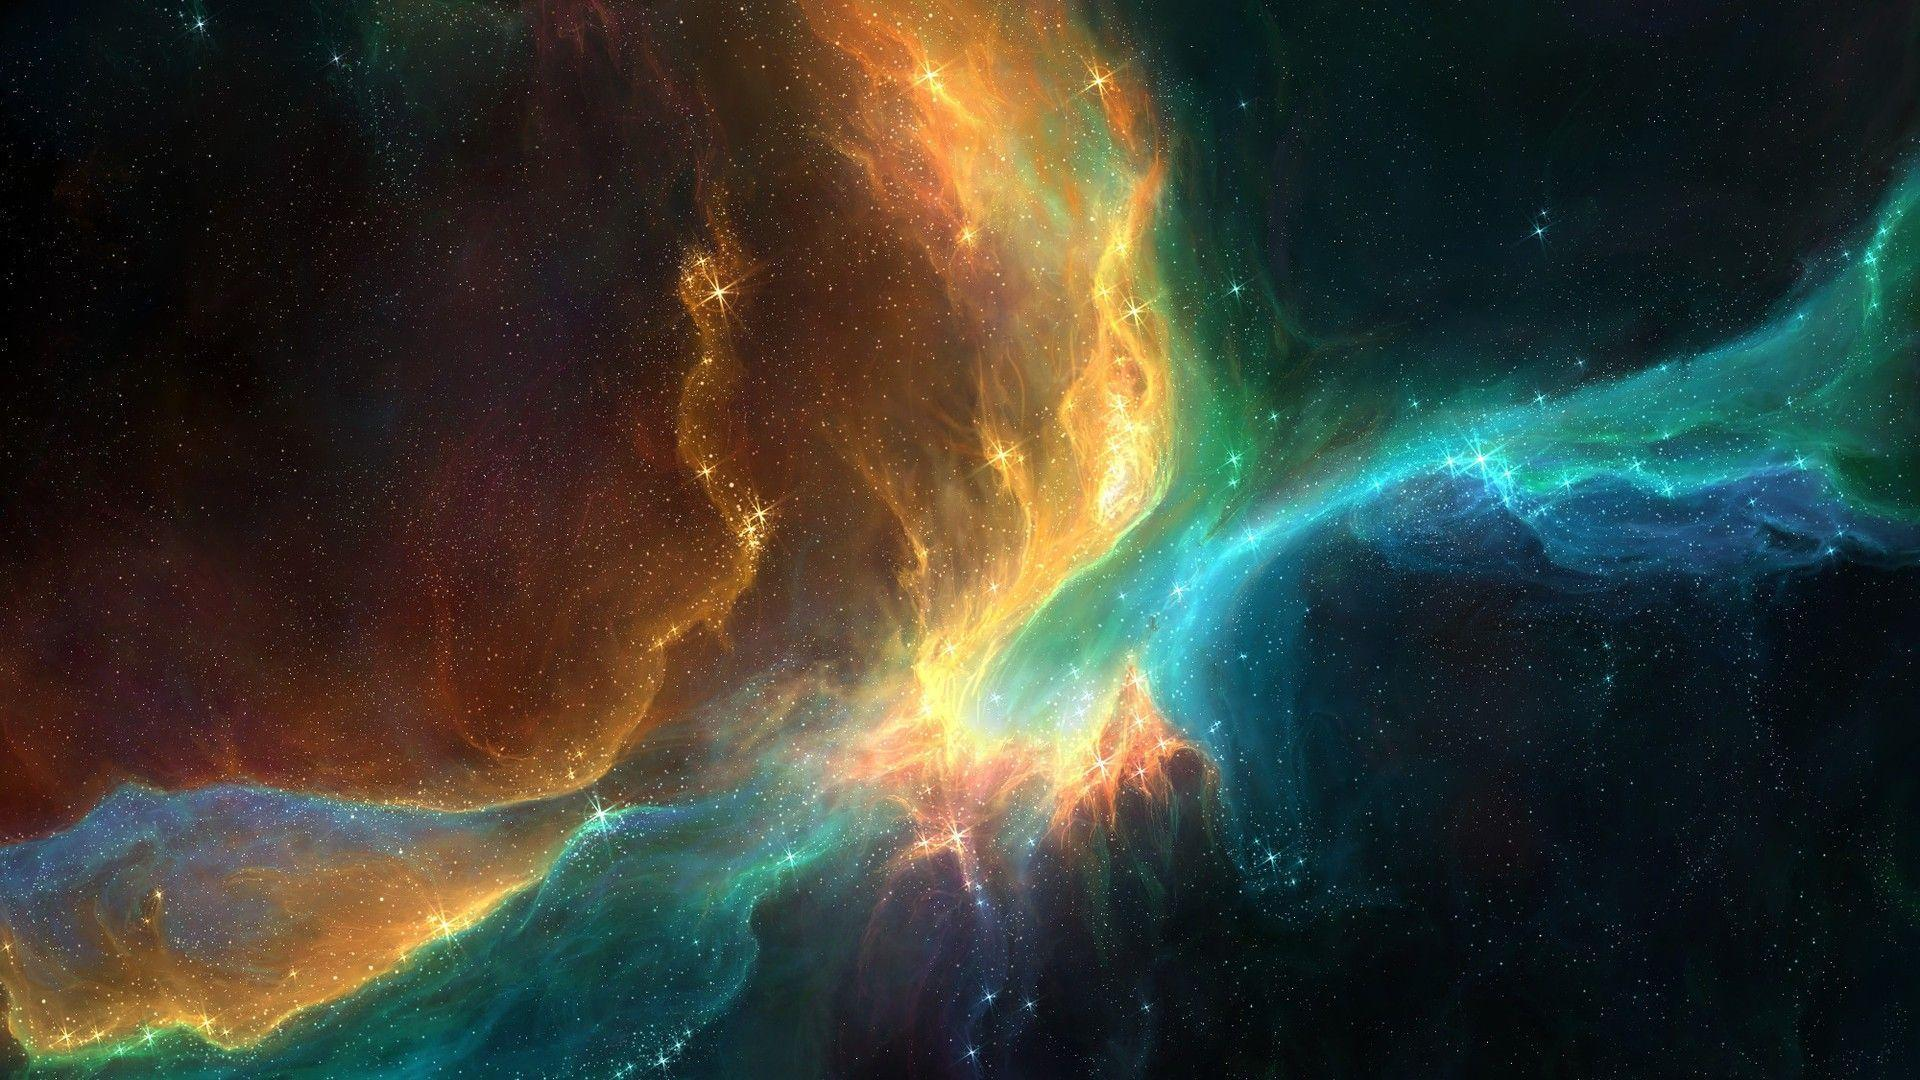 space wallpapers for desktop - photo #25